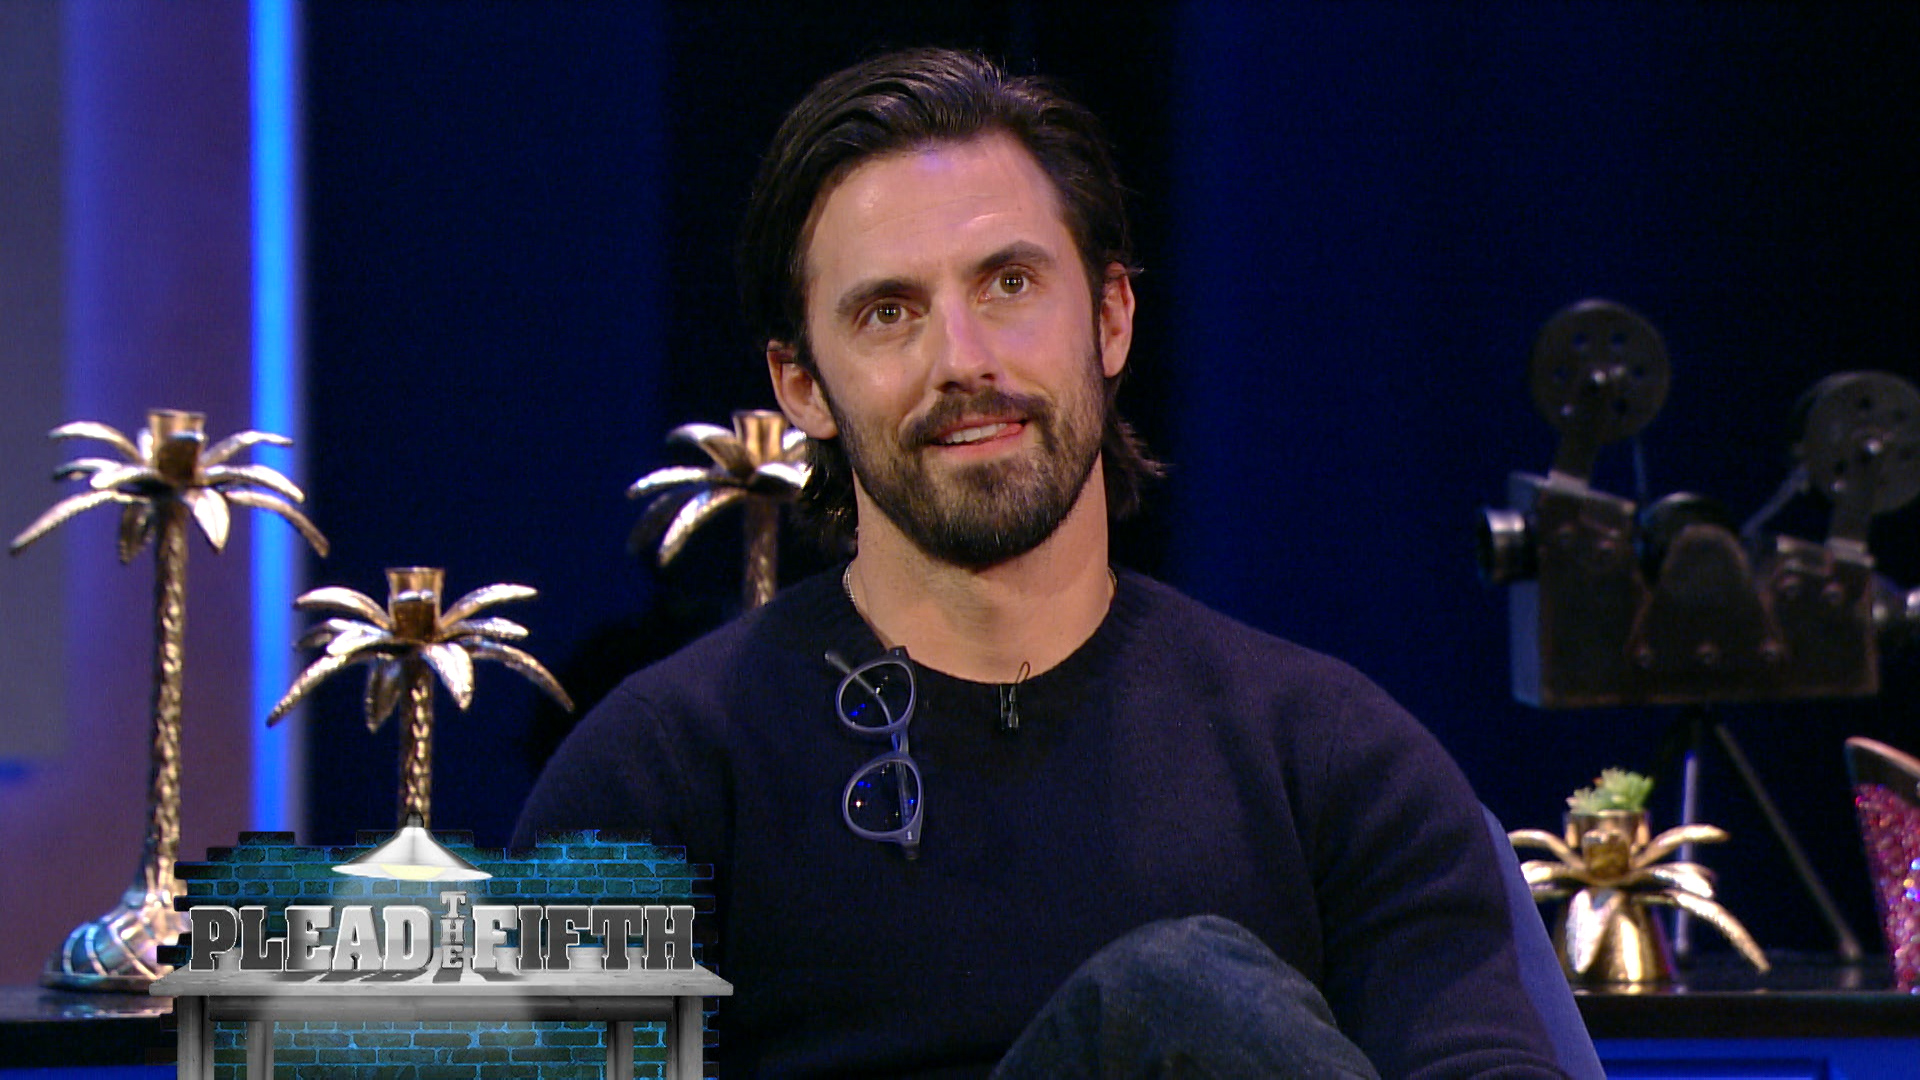 Can Milo Ventimiglia Name 3 Mandy Moore Songs?